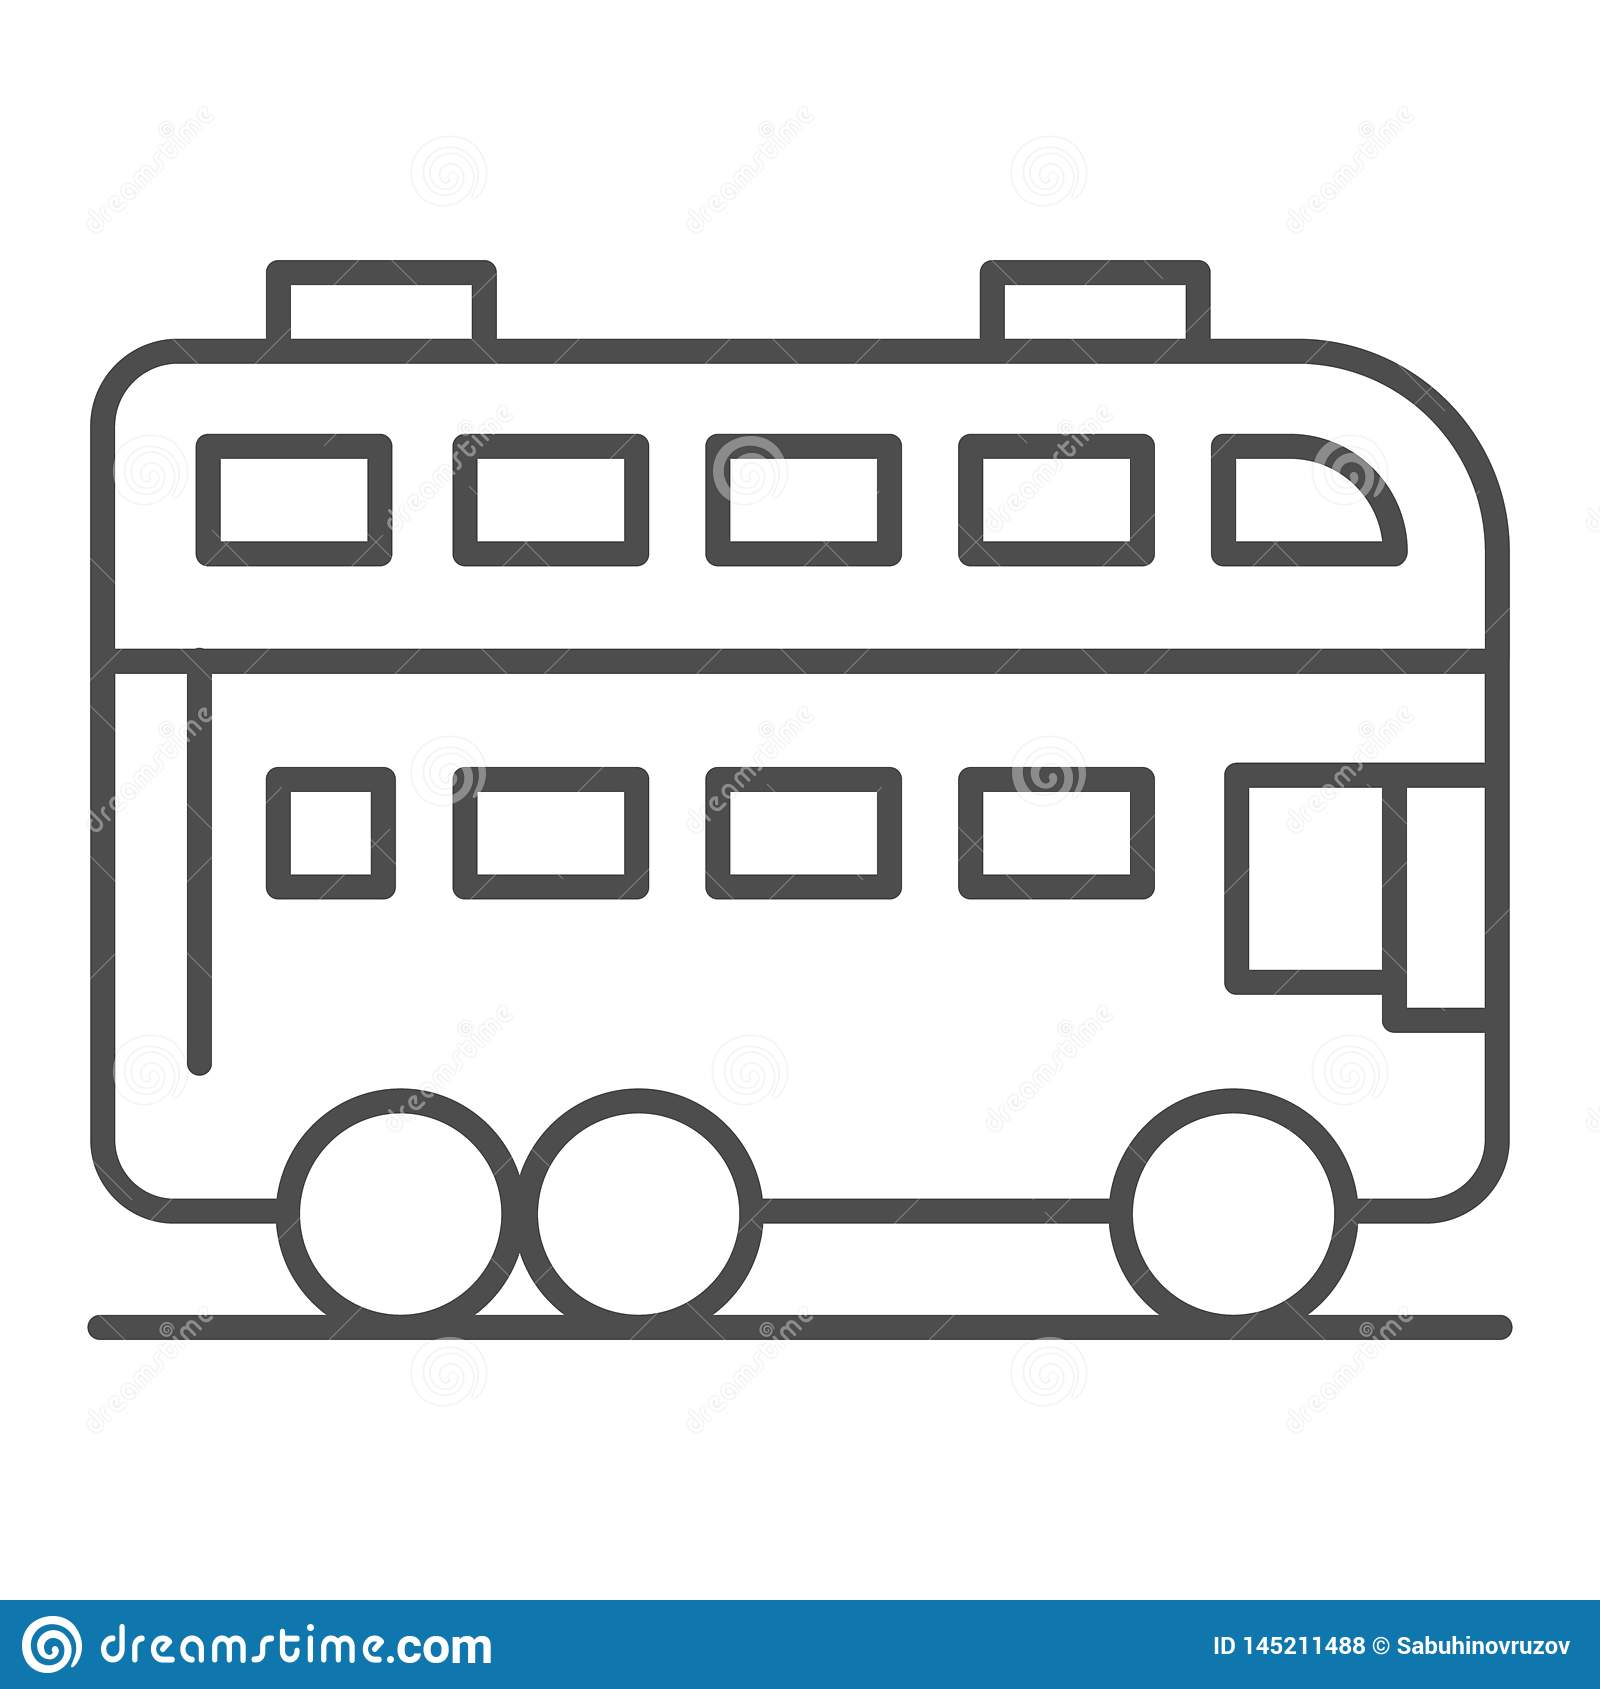 London bus thin line icon. Double decker bus vector illustration isolated on white. Travel outline style design